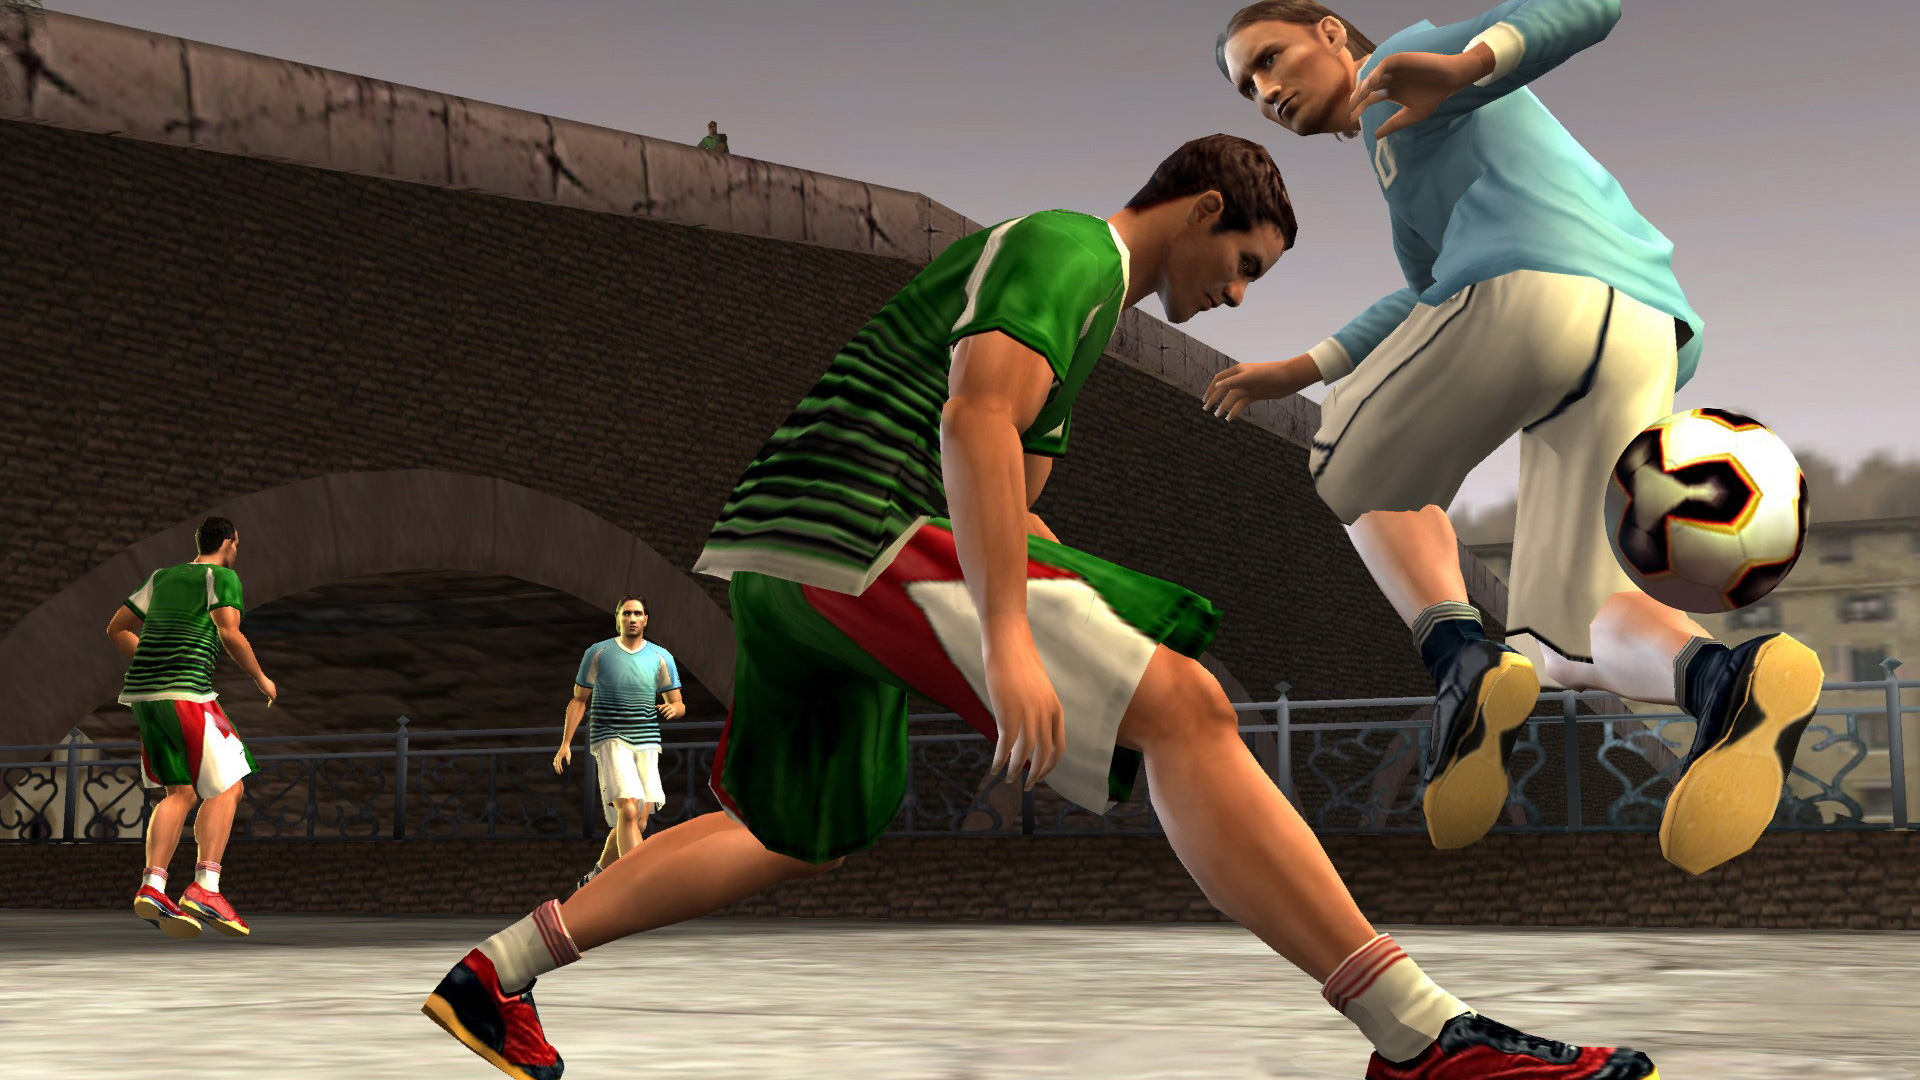 FIFA Street Wallpaper in 1920x1080